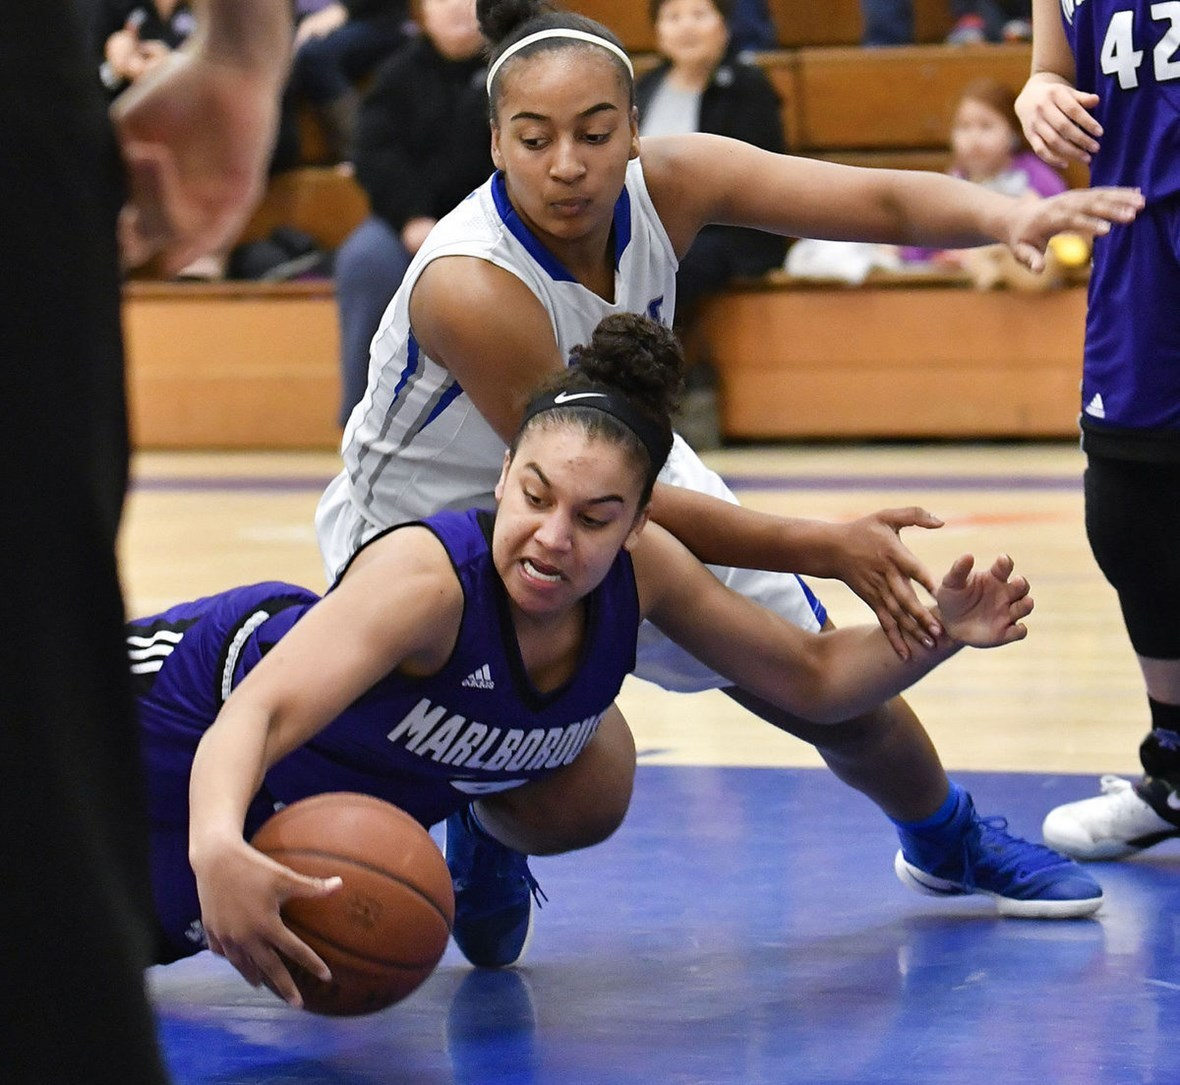 Mustangs Advance to CIF-SS Basketball Quarterfinals